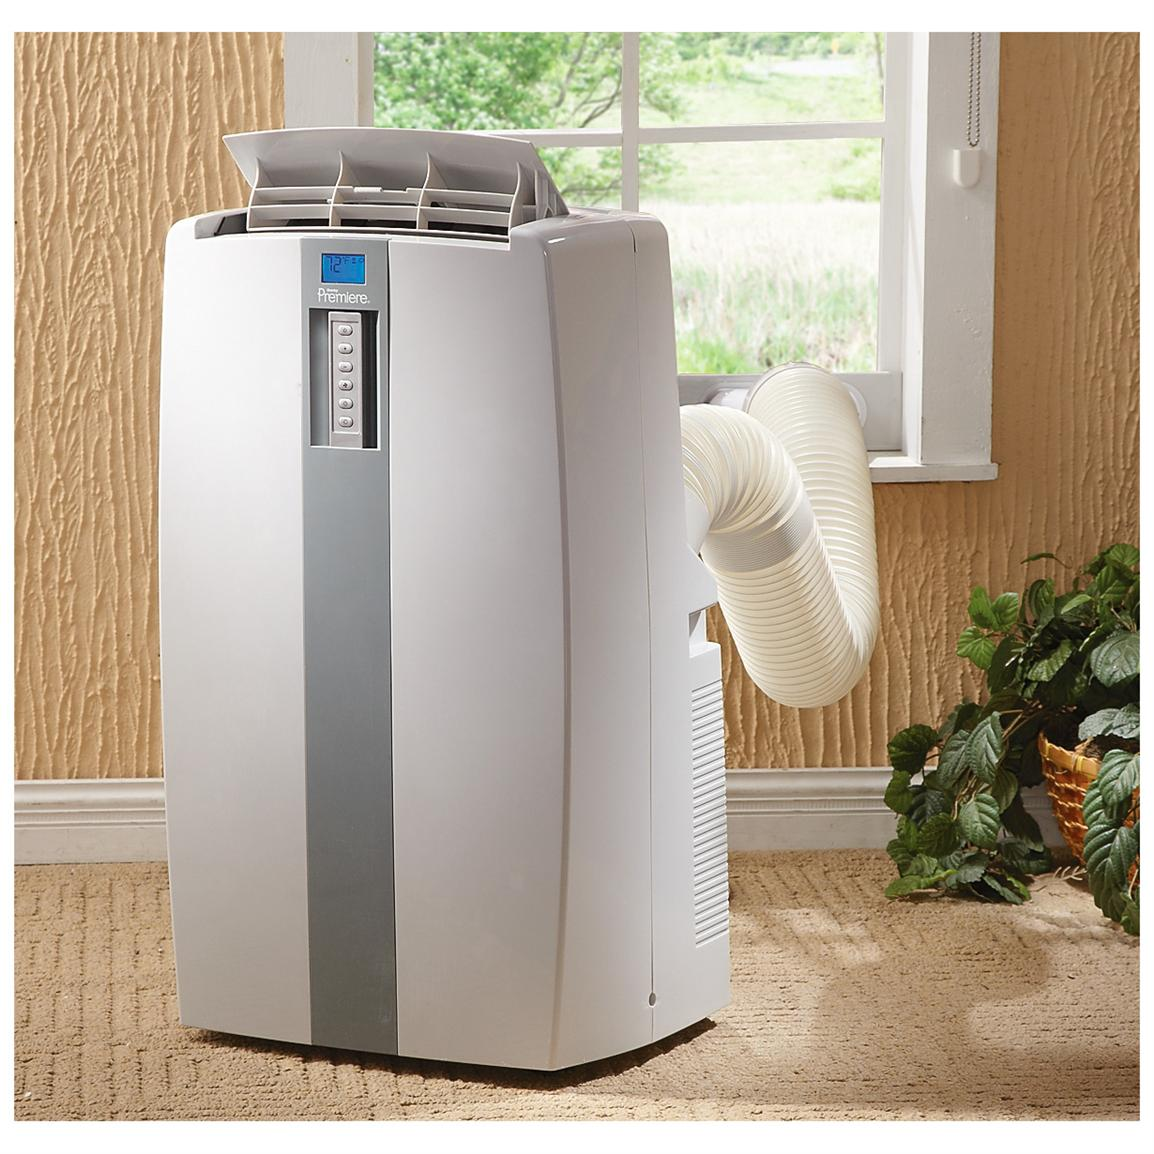 Danby® 13,000 BTU Portable Air Conditioner (Factory Refurbished) - 294354, Air Conditioners ...